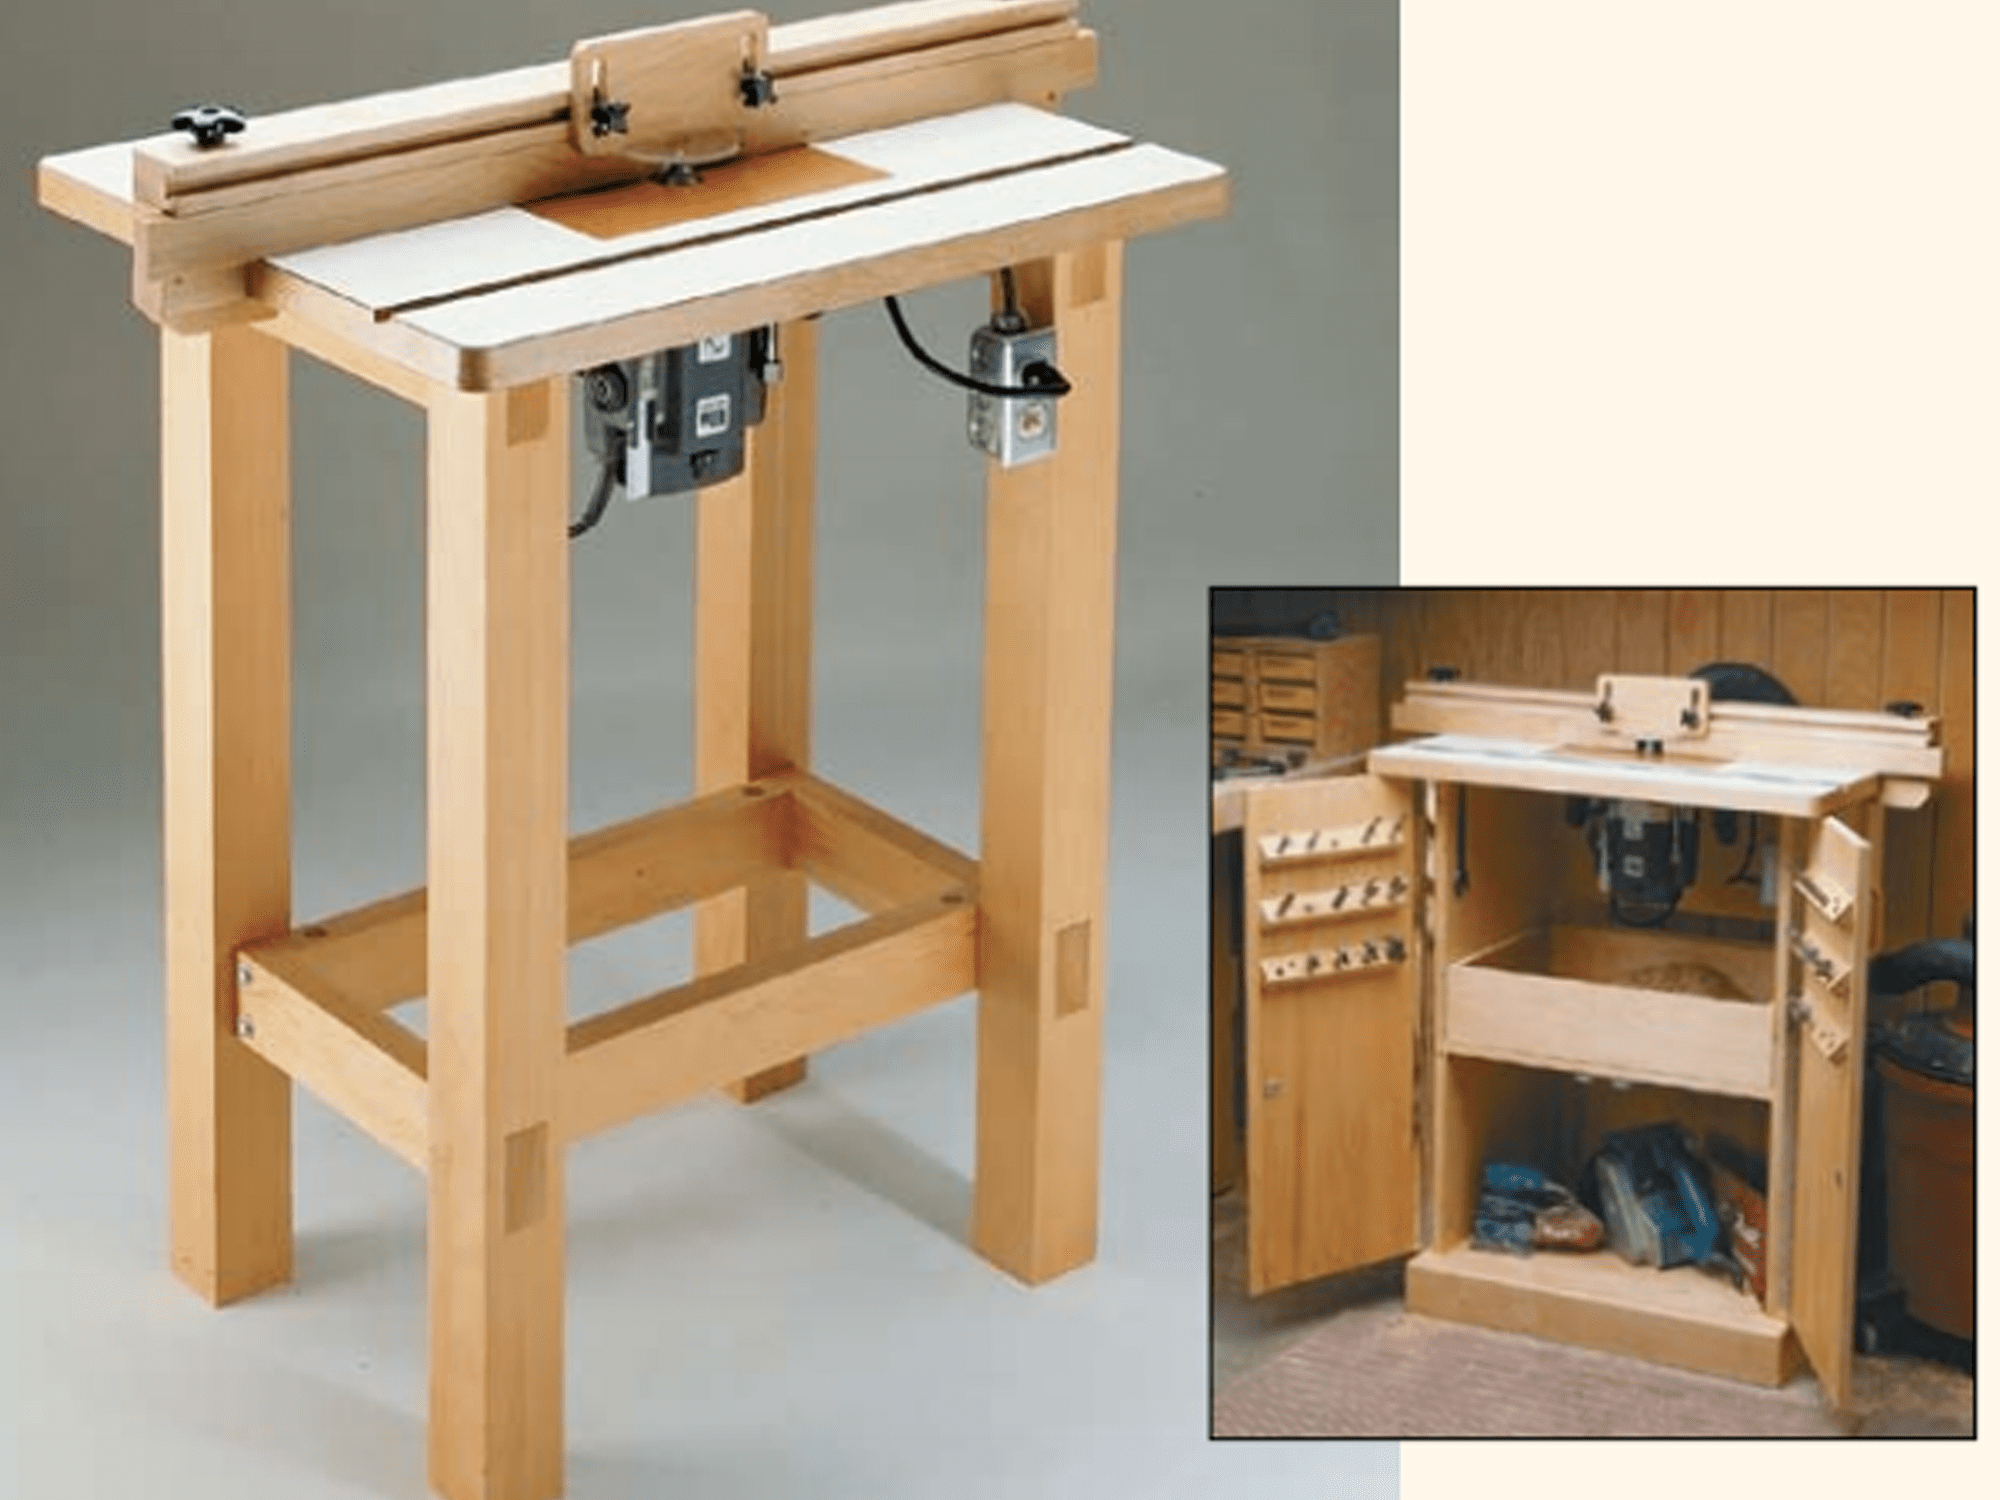 Router table diy lift choice image wiring table and diagram sample 9 free diy router table plans you can use right now keyboard keysfo choice image greentooth Images